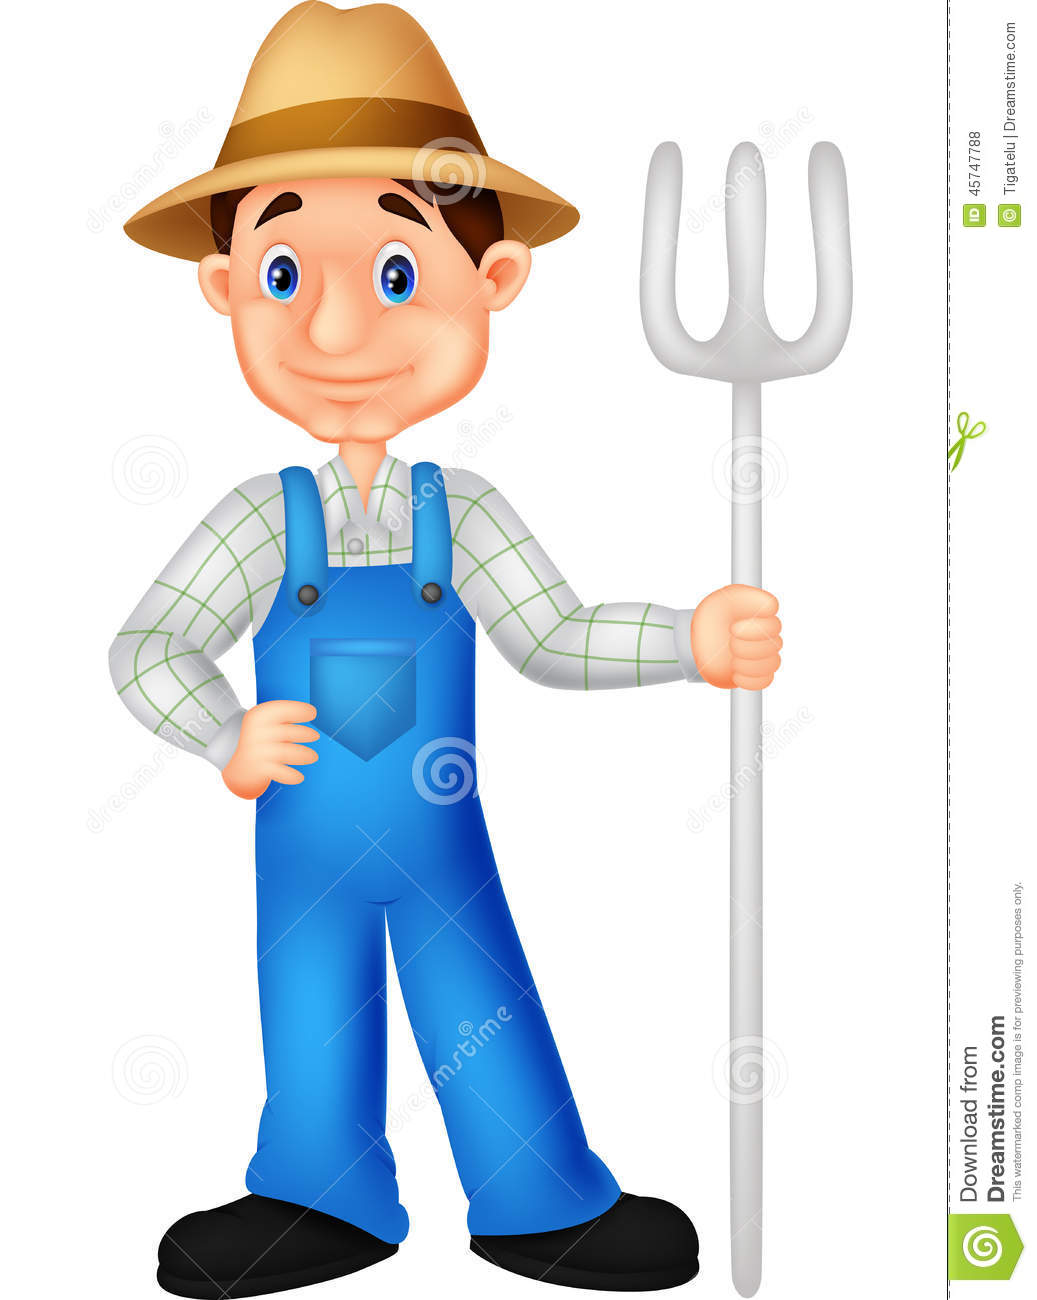 Farmer Cartoon Stock Vector - Image: 45747788